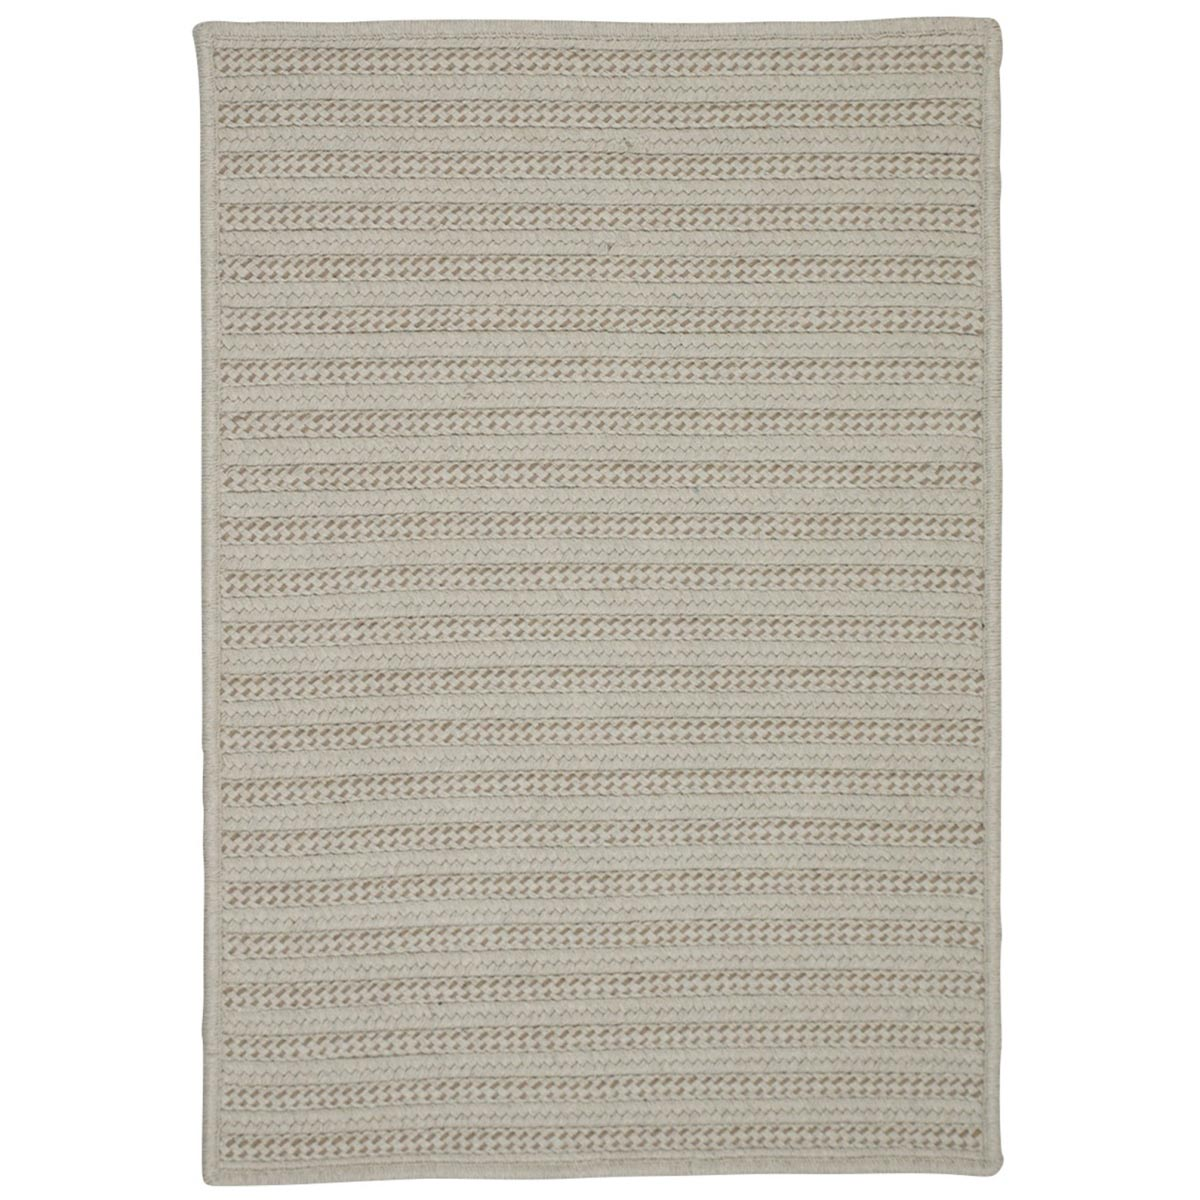 Sunbrella Booth Bay Alpaca Outdoor Braided Rectangular Rugs